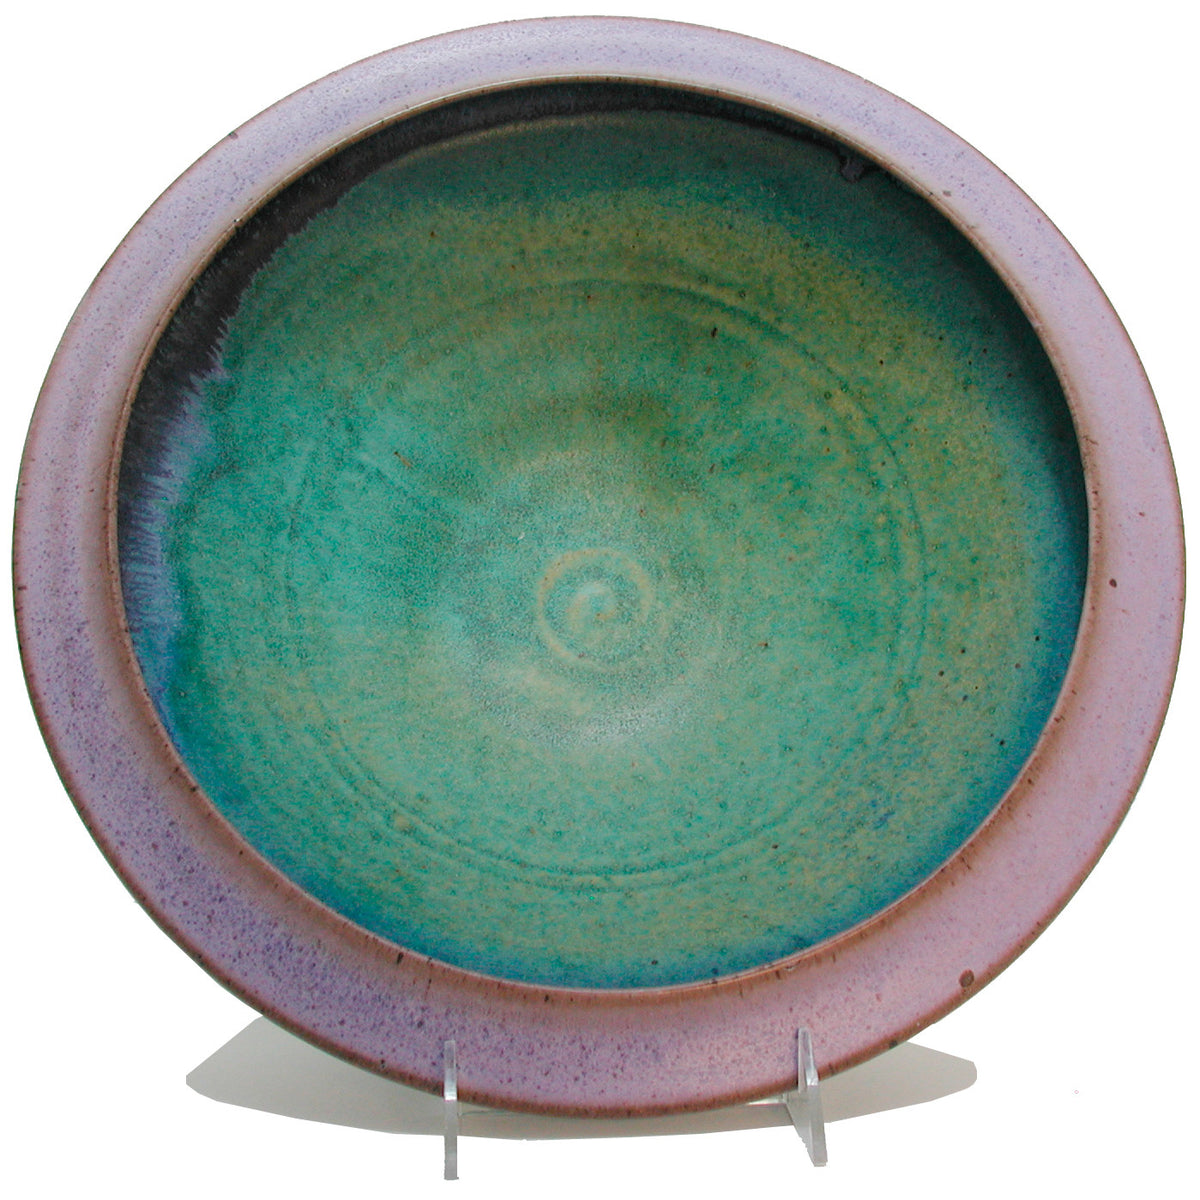 Maishe Dickman Hand Thrown Stoneware Turquoise Serving